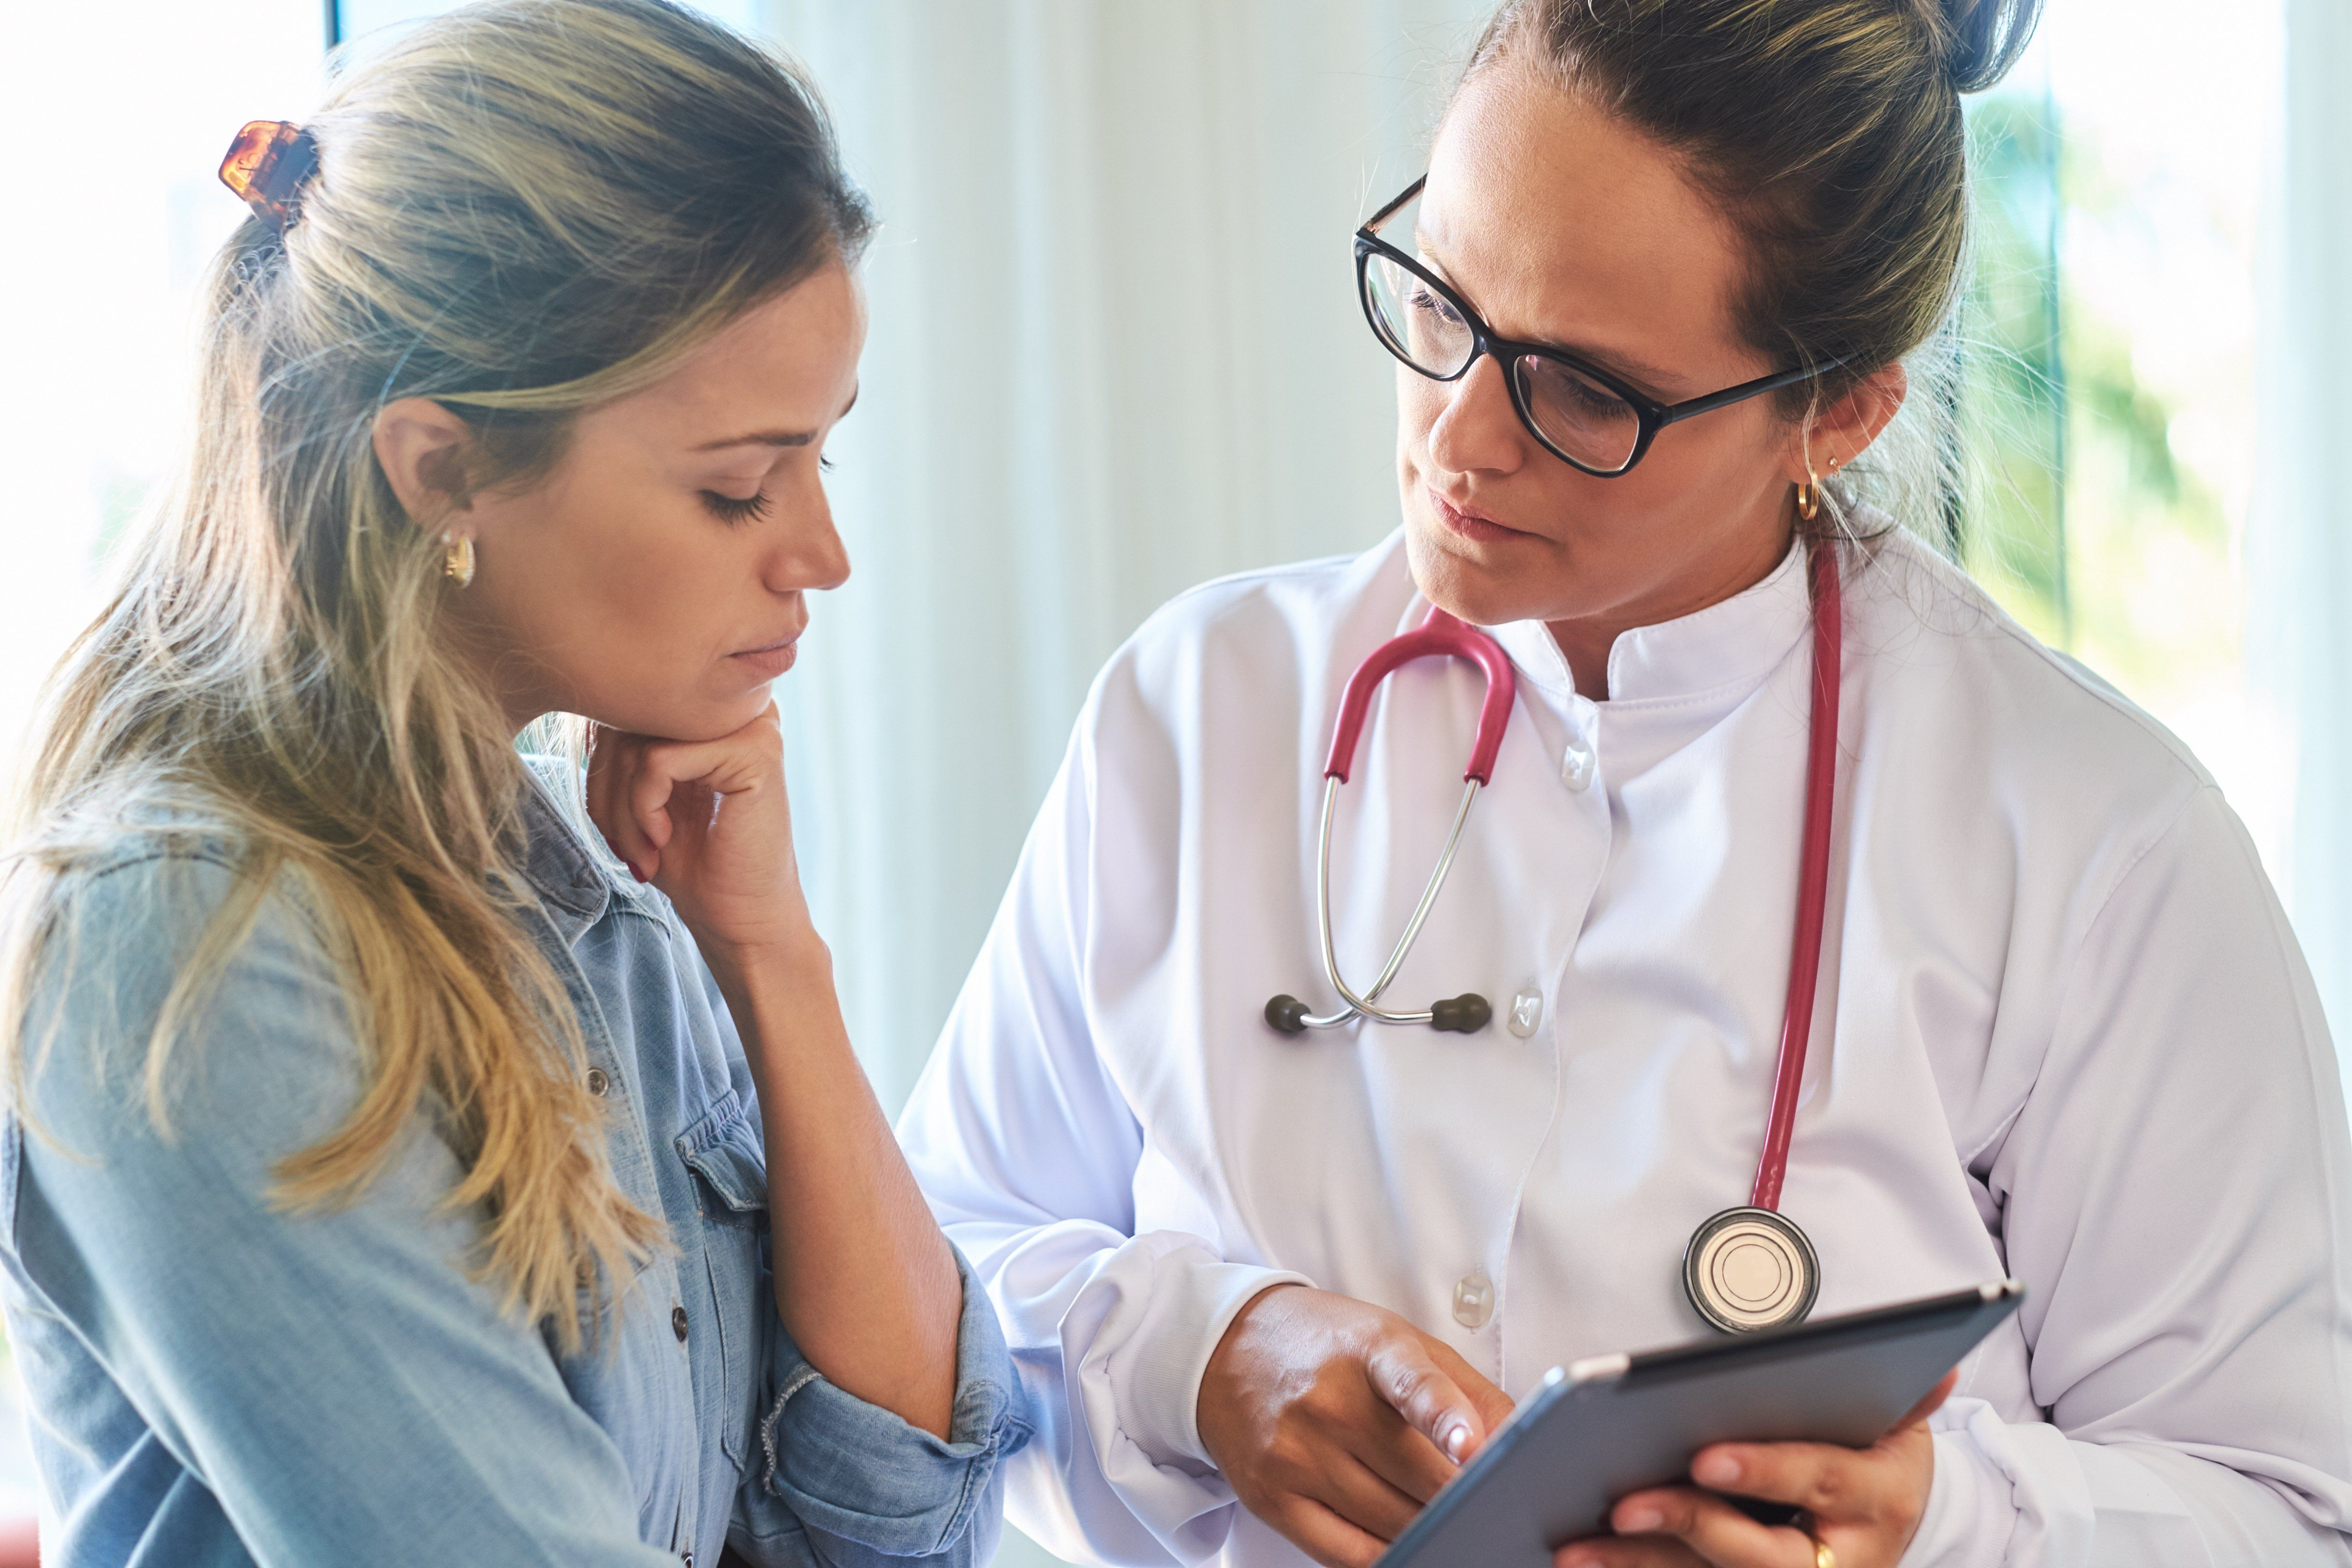 Talk to your patients about screening versus monitoring diagnostic tests